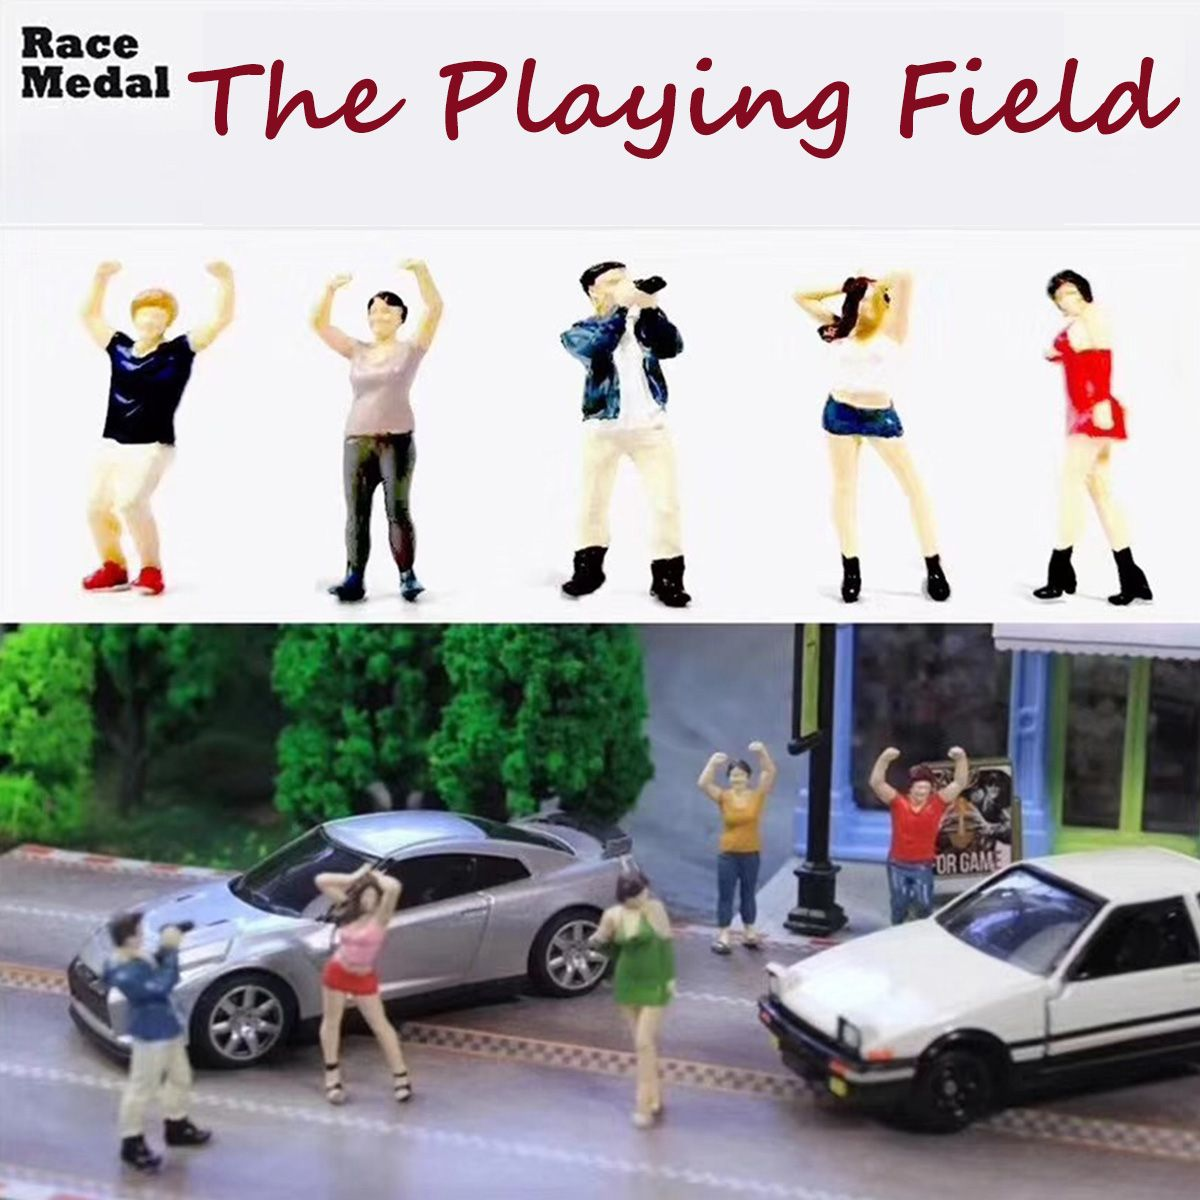 Race Medal 1:64 The playing field people Scenario Model Set For MatchboxRace Medal 1:64 The playing field people Scenario Model Set For Matchbox